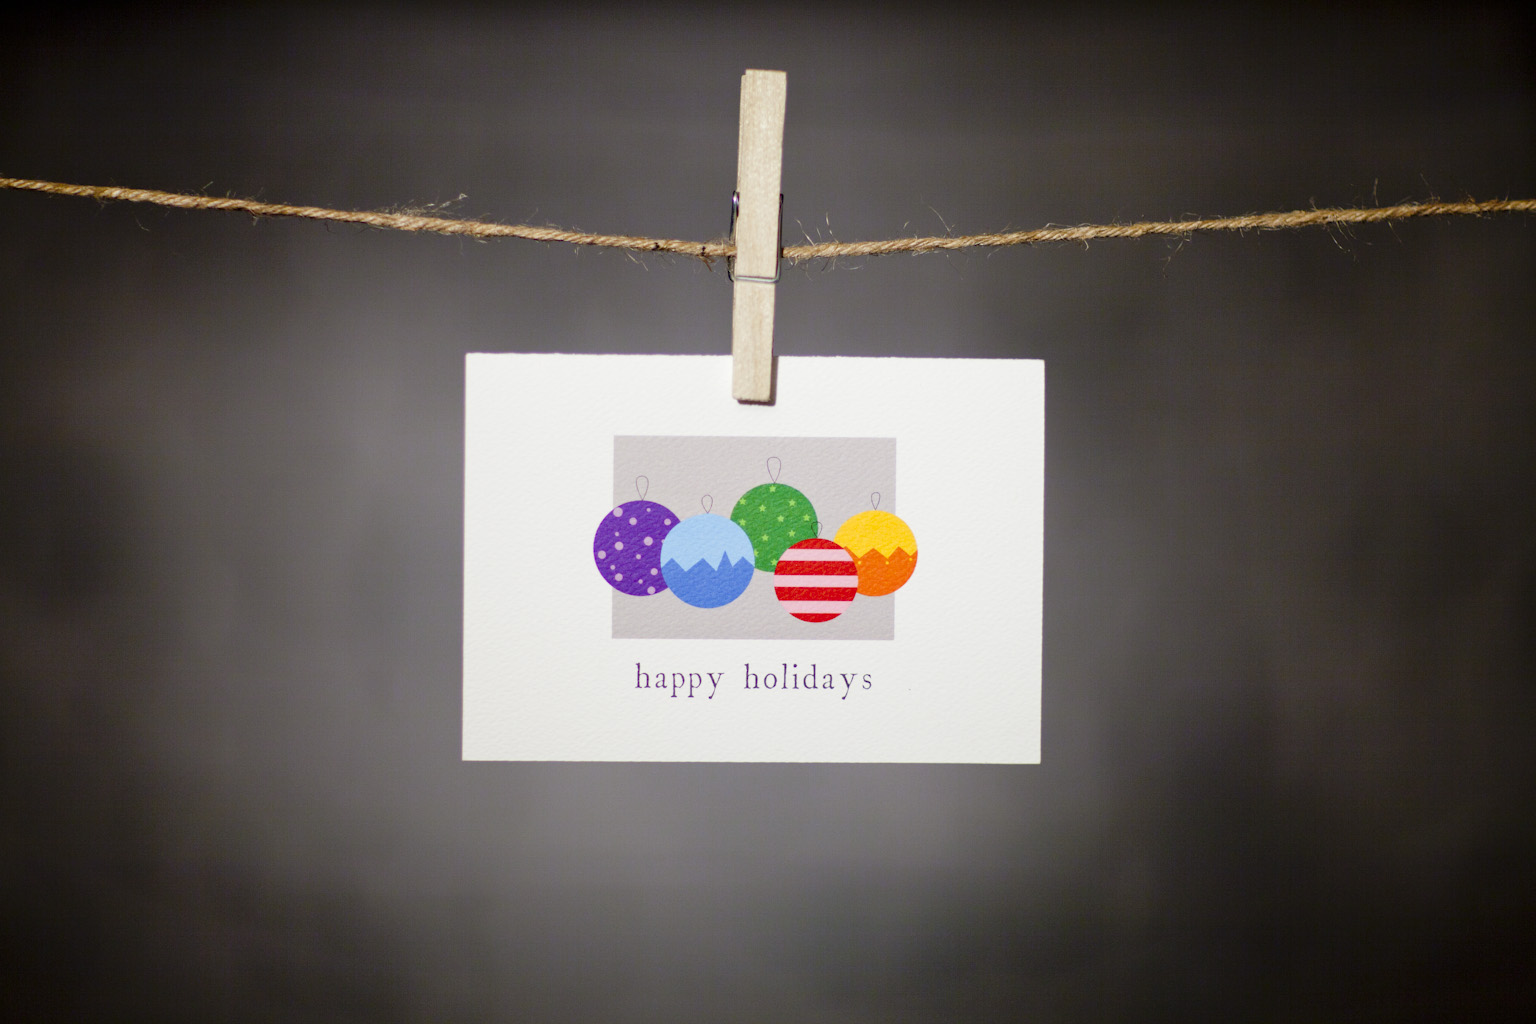 pURCHASE hEREthese colorful ornaments are sure to brighten anyone's holiday season.  share your merriment with this little bit of snail mail.  each card:is printed on 100# recycled + responsibly-sourced paper //measures 3.5{quote} x 5{quote} //is accompanied by a recycled kraft paper 4-bar envelope // professionally printed //individually packaged in sealed cellophane sleeve //crafted + printed in colorado, usa.